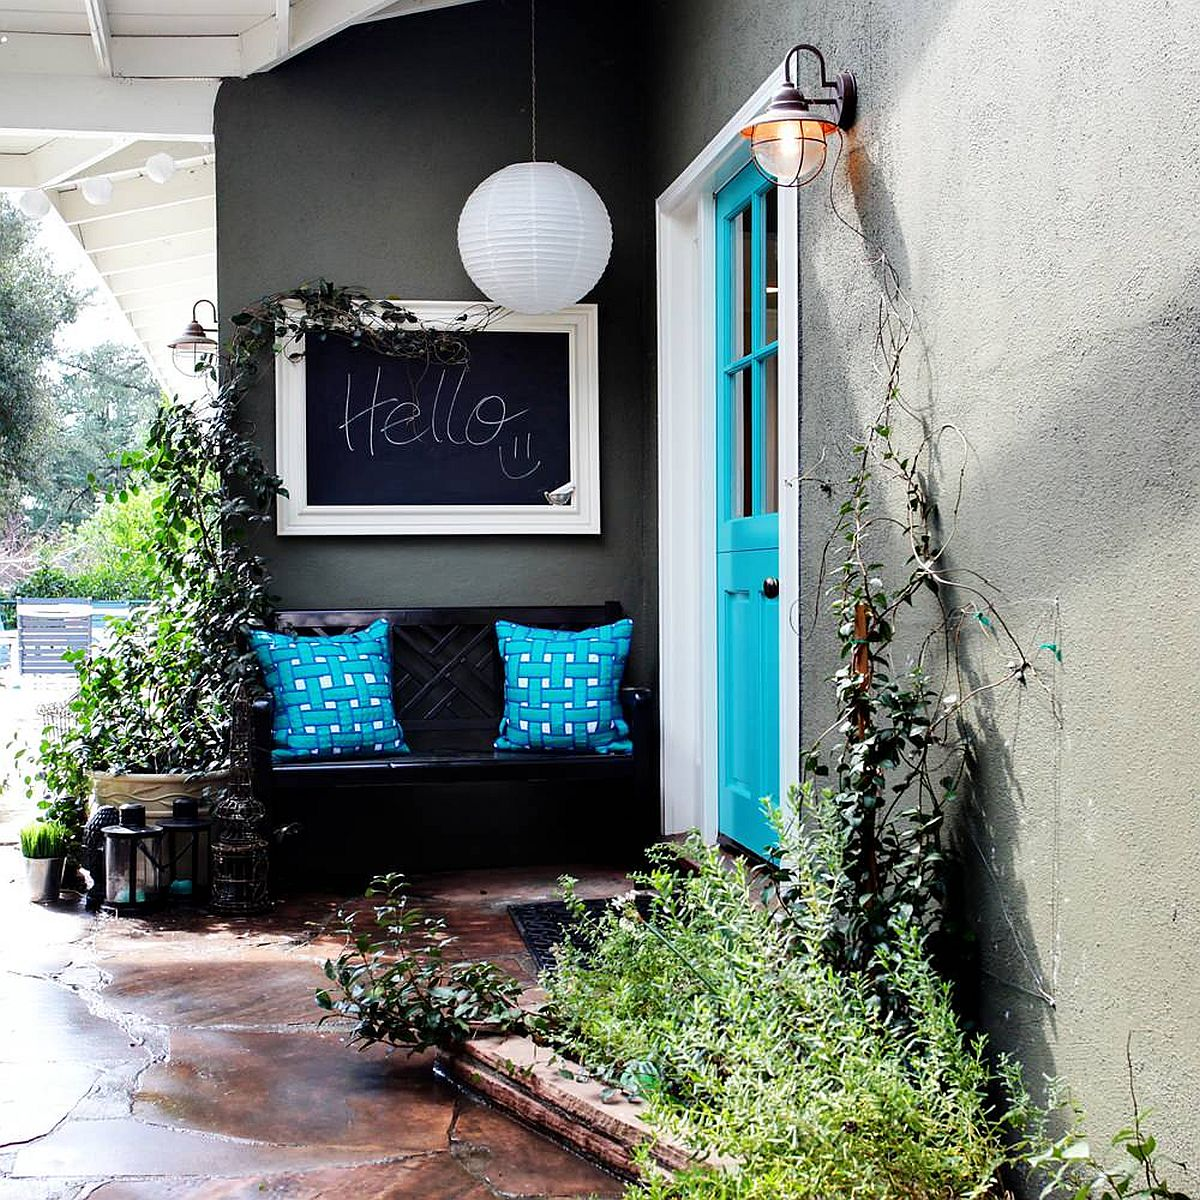 Gorgeous blue door coupled with blue cushions on the bench add color to the gray and white exterior